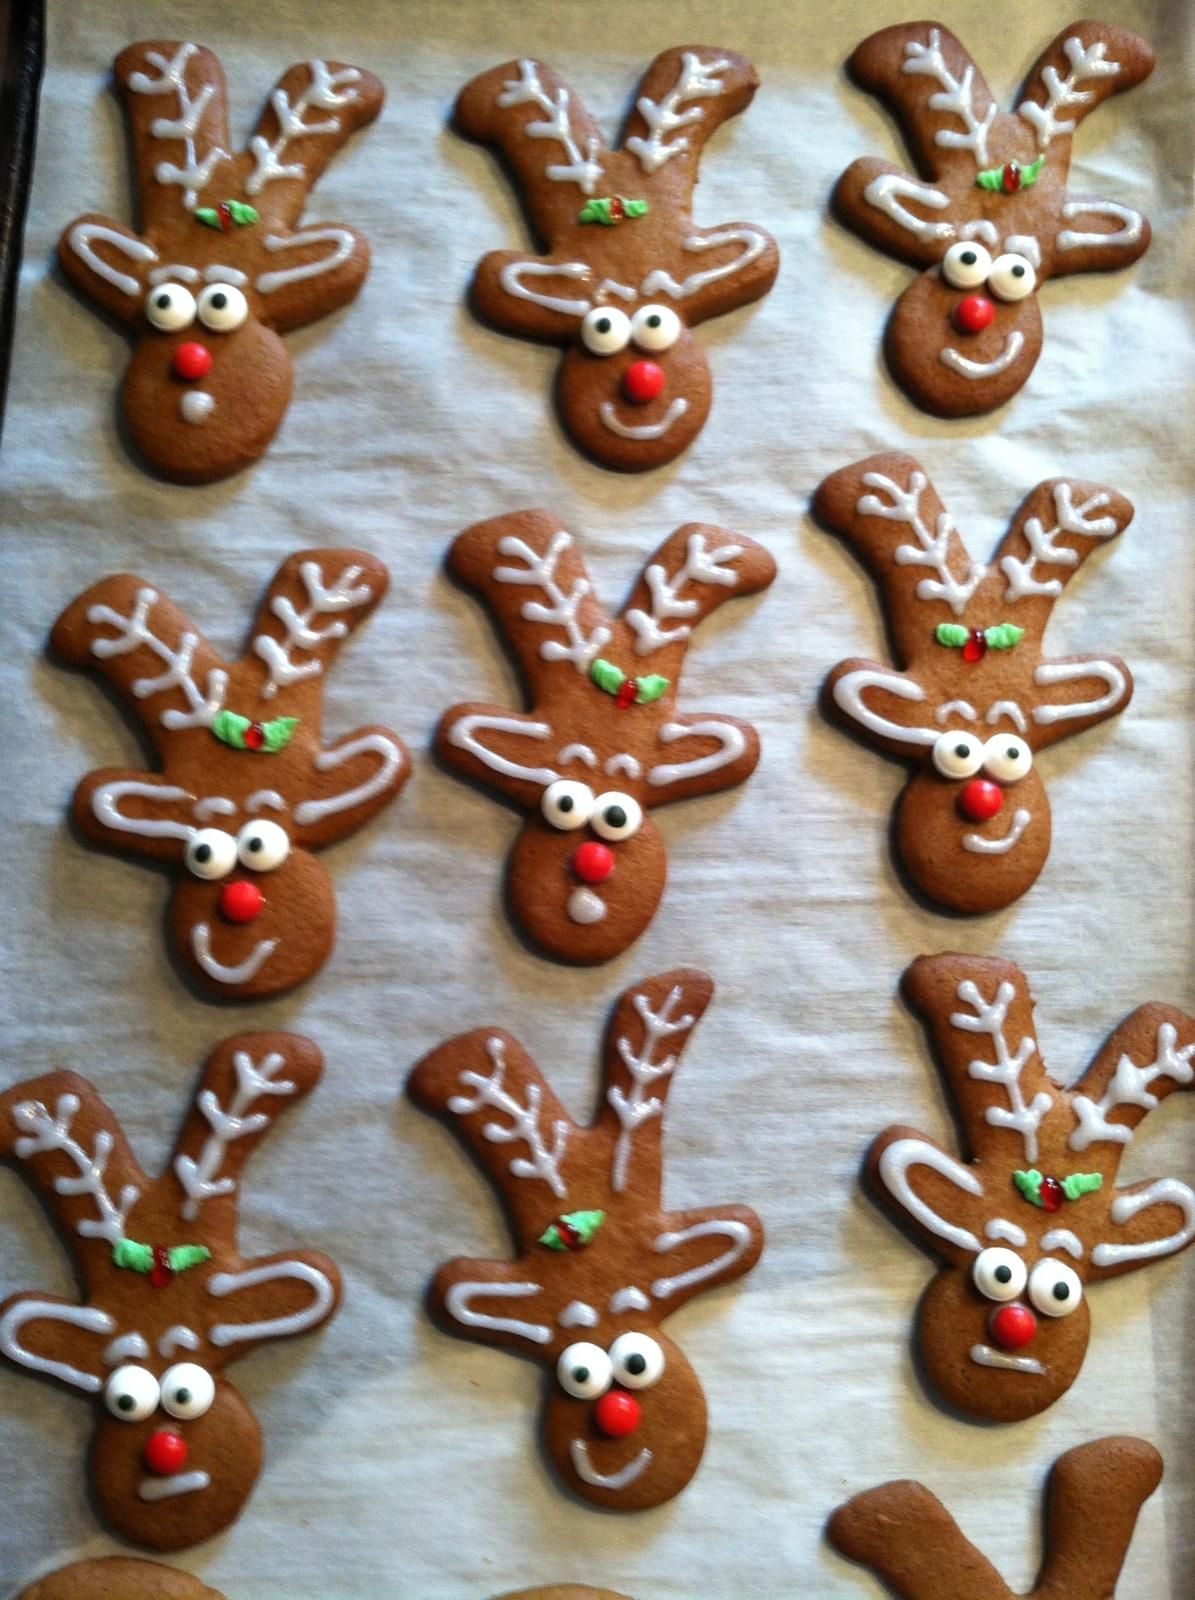 Reindeer Cookies Using Upside Down Gingerbread Man Cookie Cutter